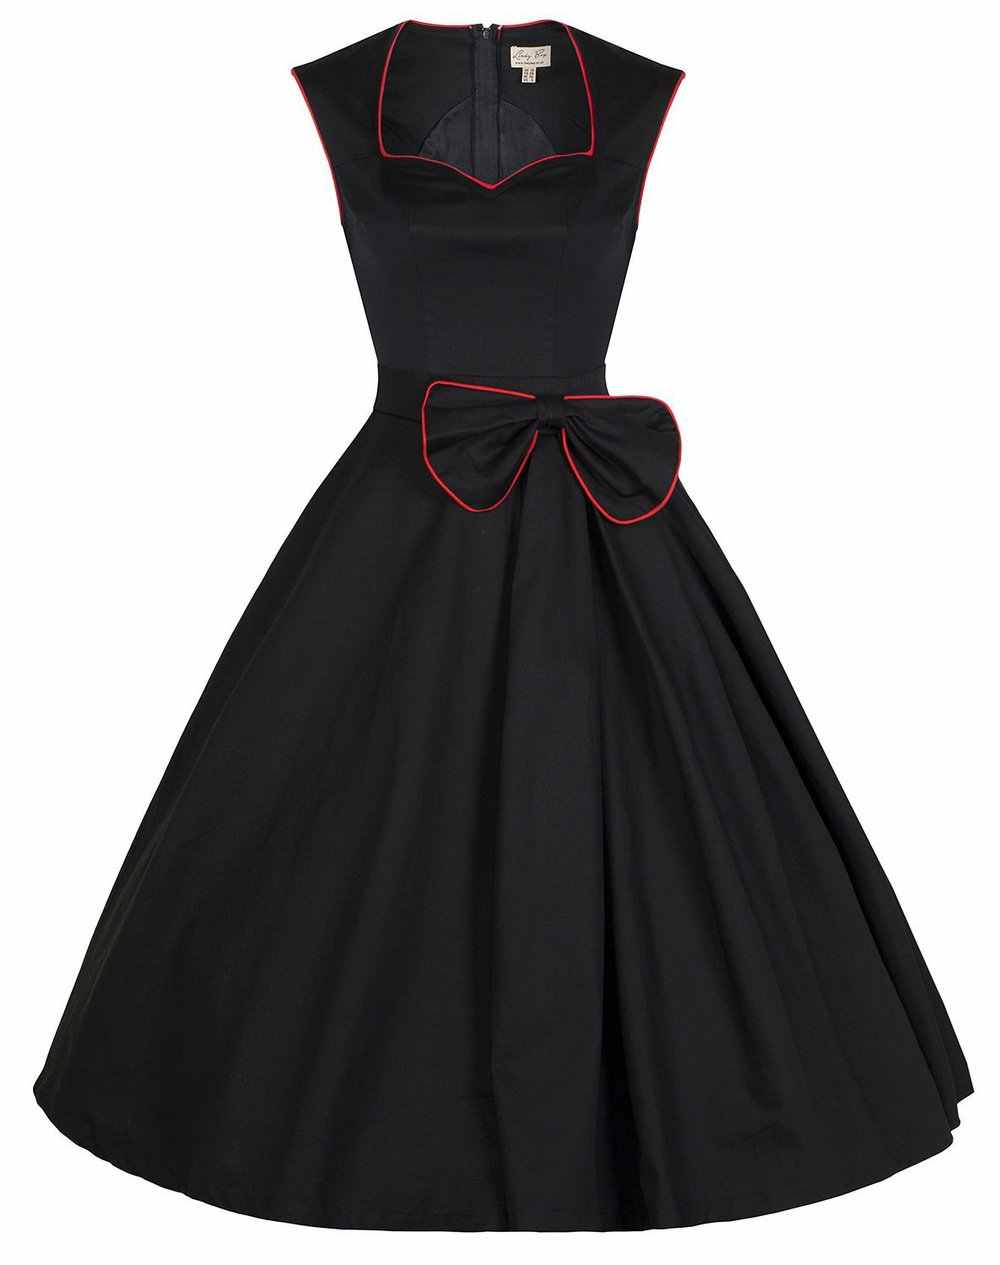 91181e6df01 ... Vintage Swing dresses 50s 60 style square collar Women Retro Casual bow  Party Rockabilly Dress Femininos ...